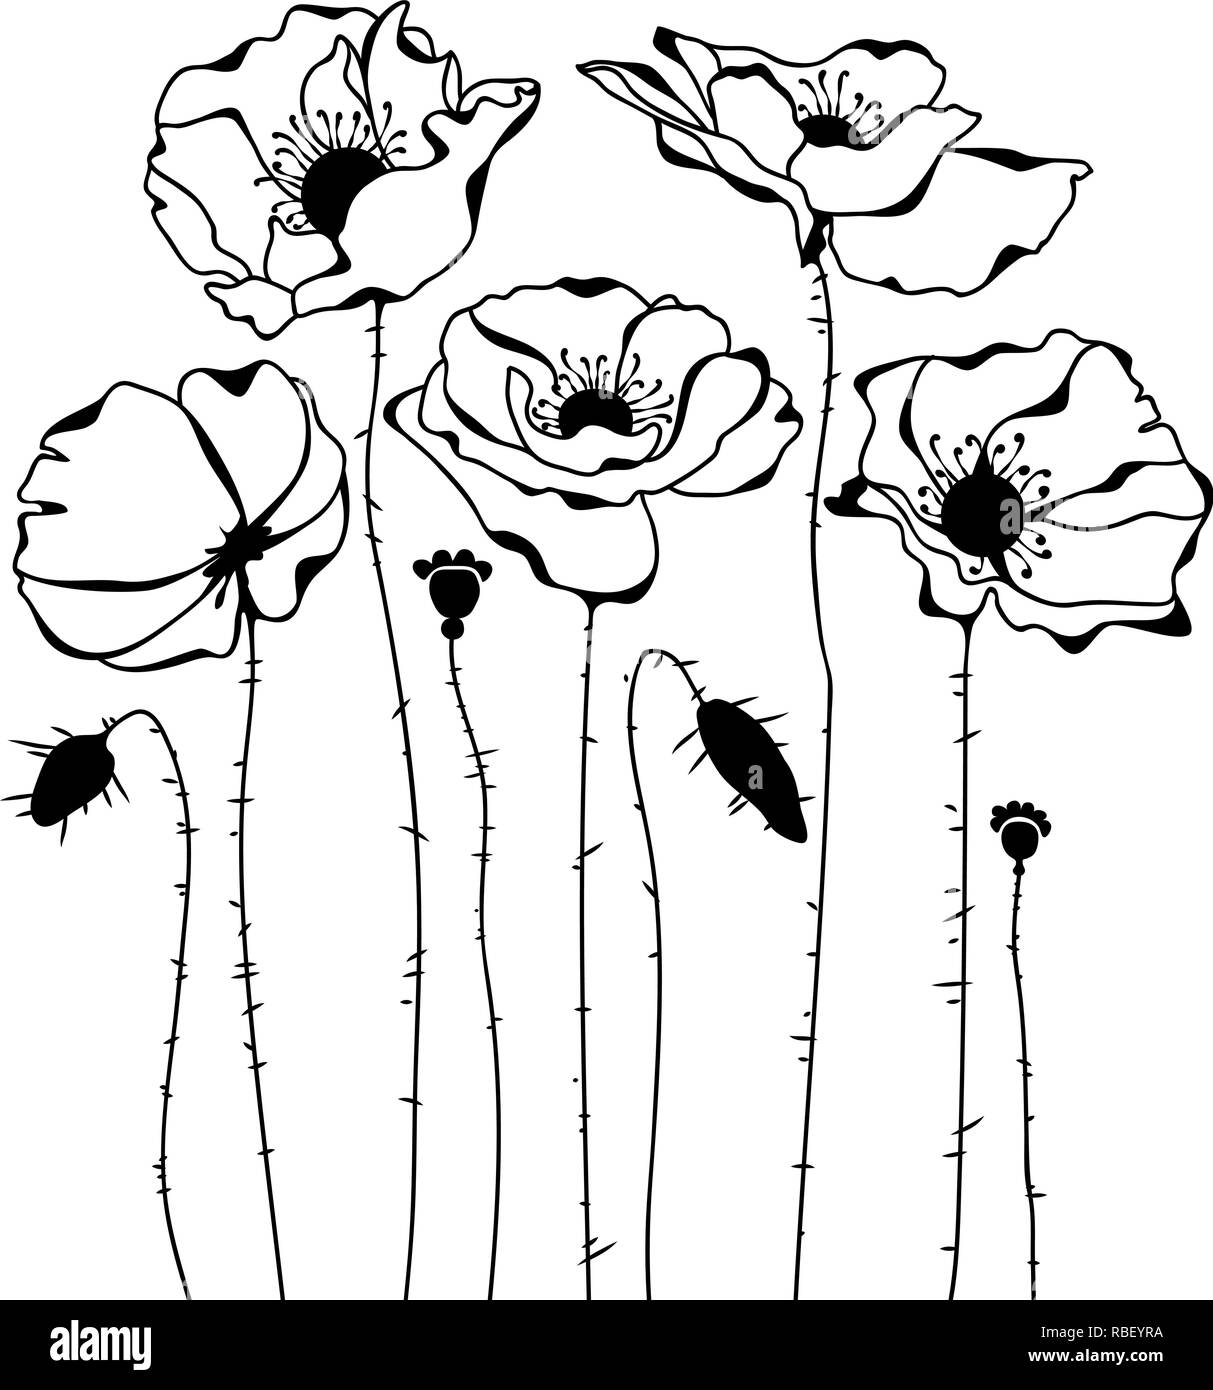 Sketch of poppies silhouette isolated on white background - Stock Vector